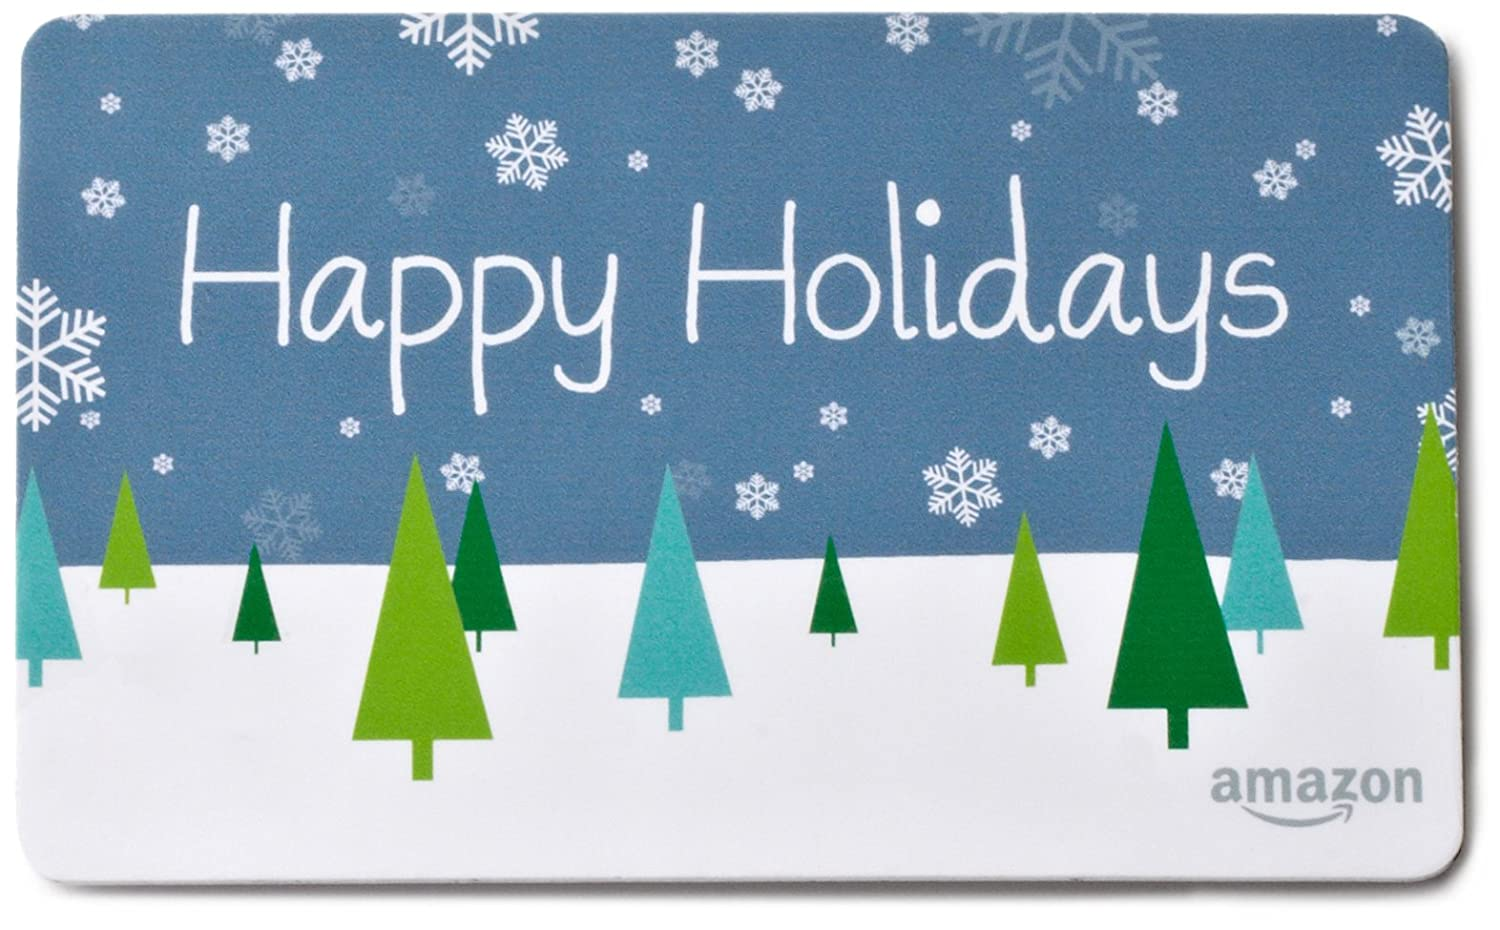 Pay outs as low as 1 for amazon gift card minimum of 10 for - Amazon Com Amazon Com Gift Card For Any Amount In A Snowflake Tin Happy Holidays Card Design Gift Cards